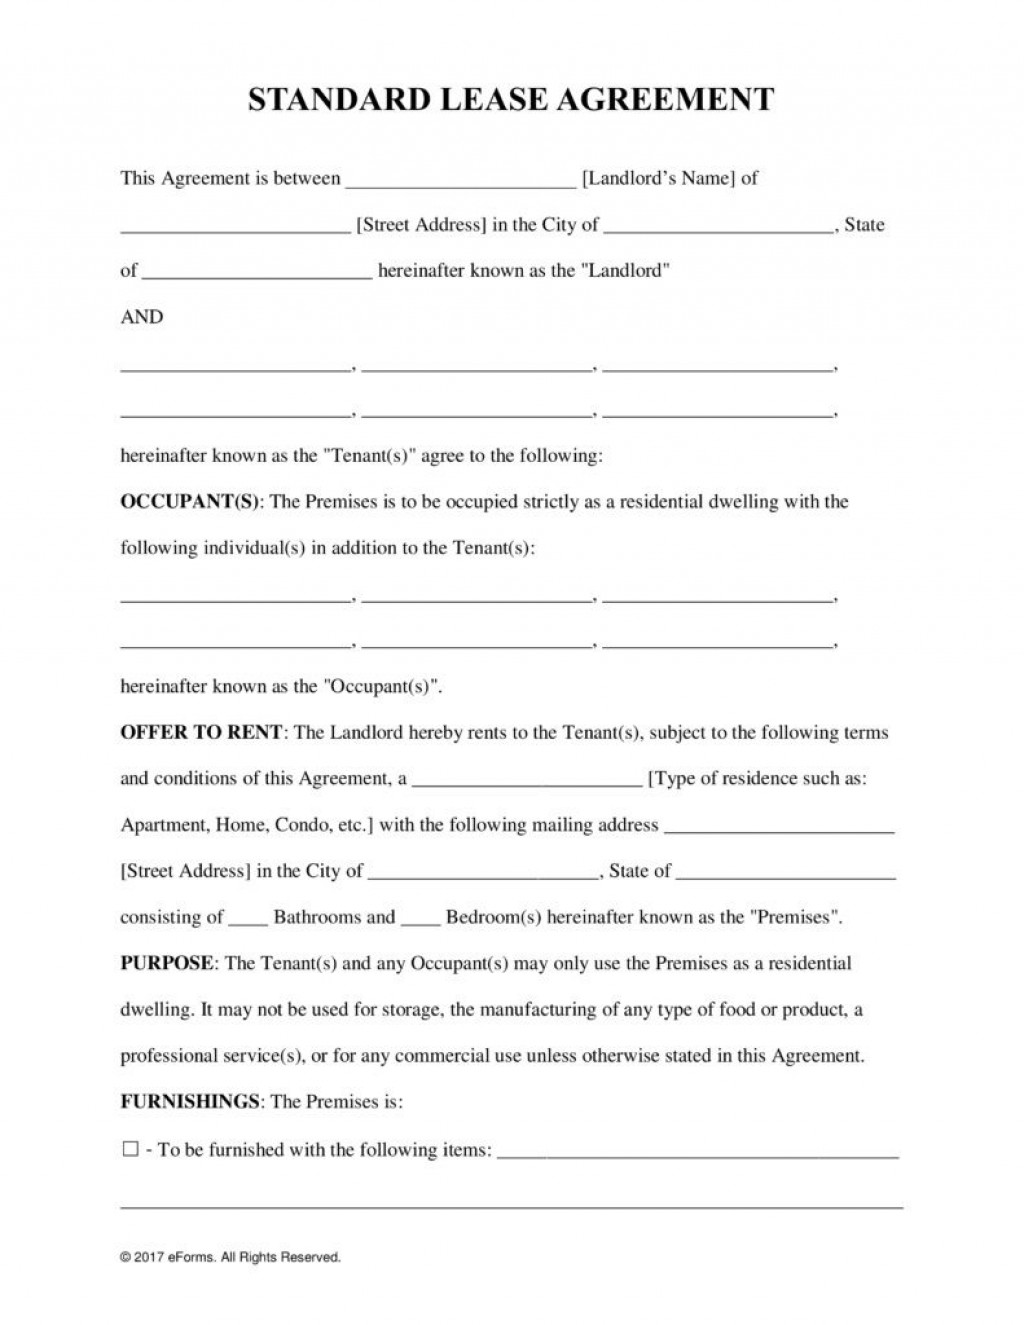 001 Singular Free Lease Agreement Template Word Photo  Doc Residential Commercial UkLarge